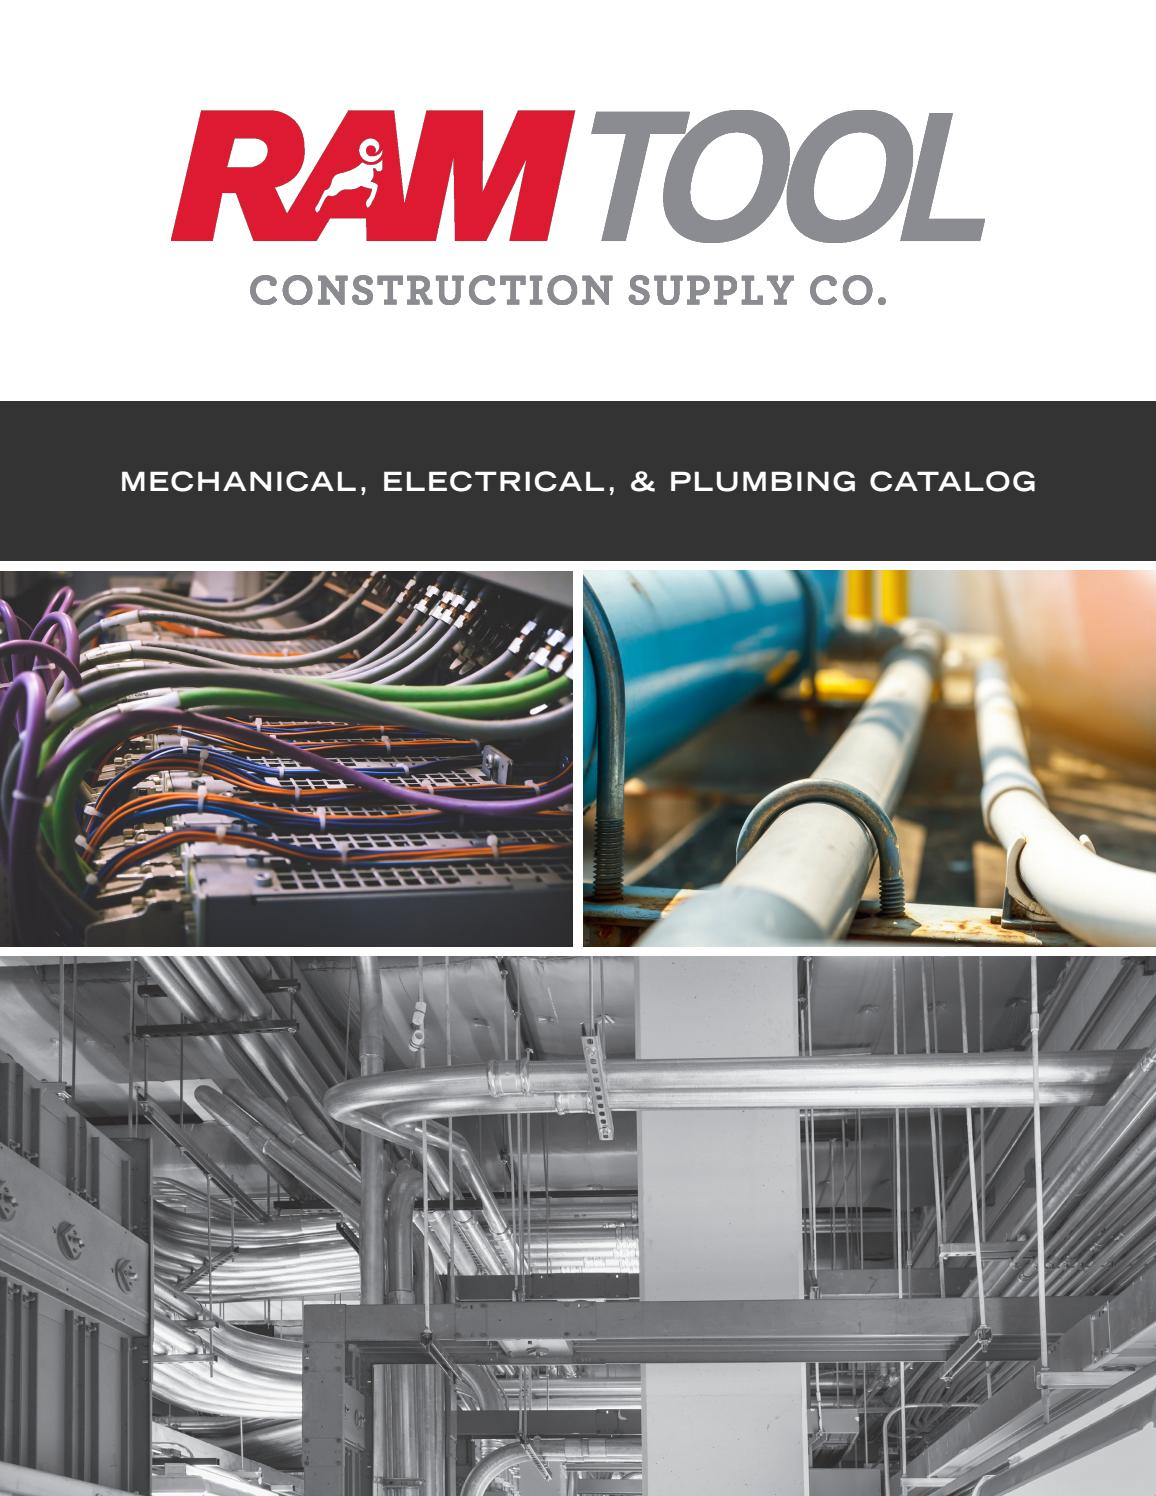 Mep Catalog By Ram Tool Construction Supply Co Issuu Spacesaving Design Simplifies Inwall Wiring And Keeps Messy Cables